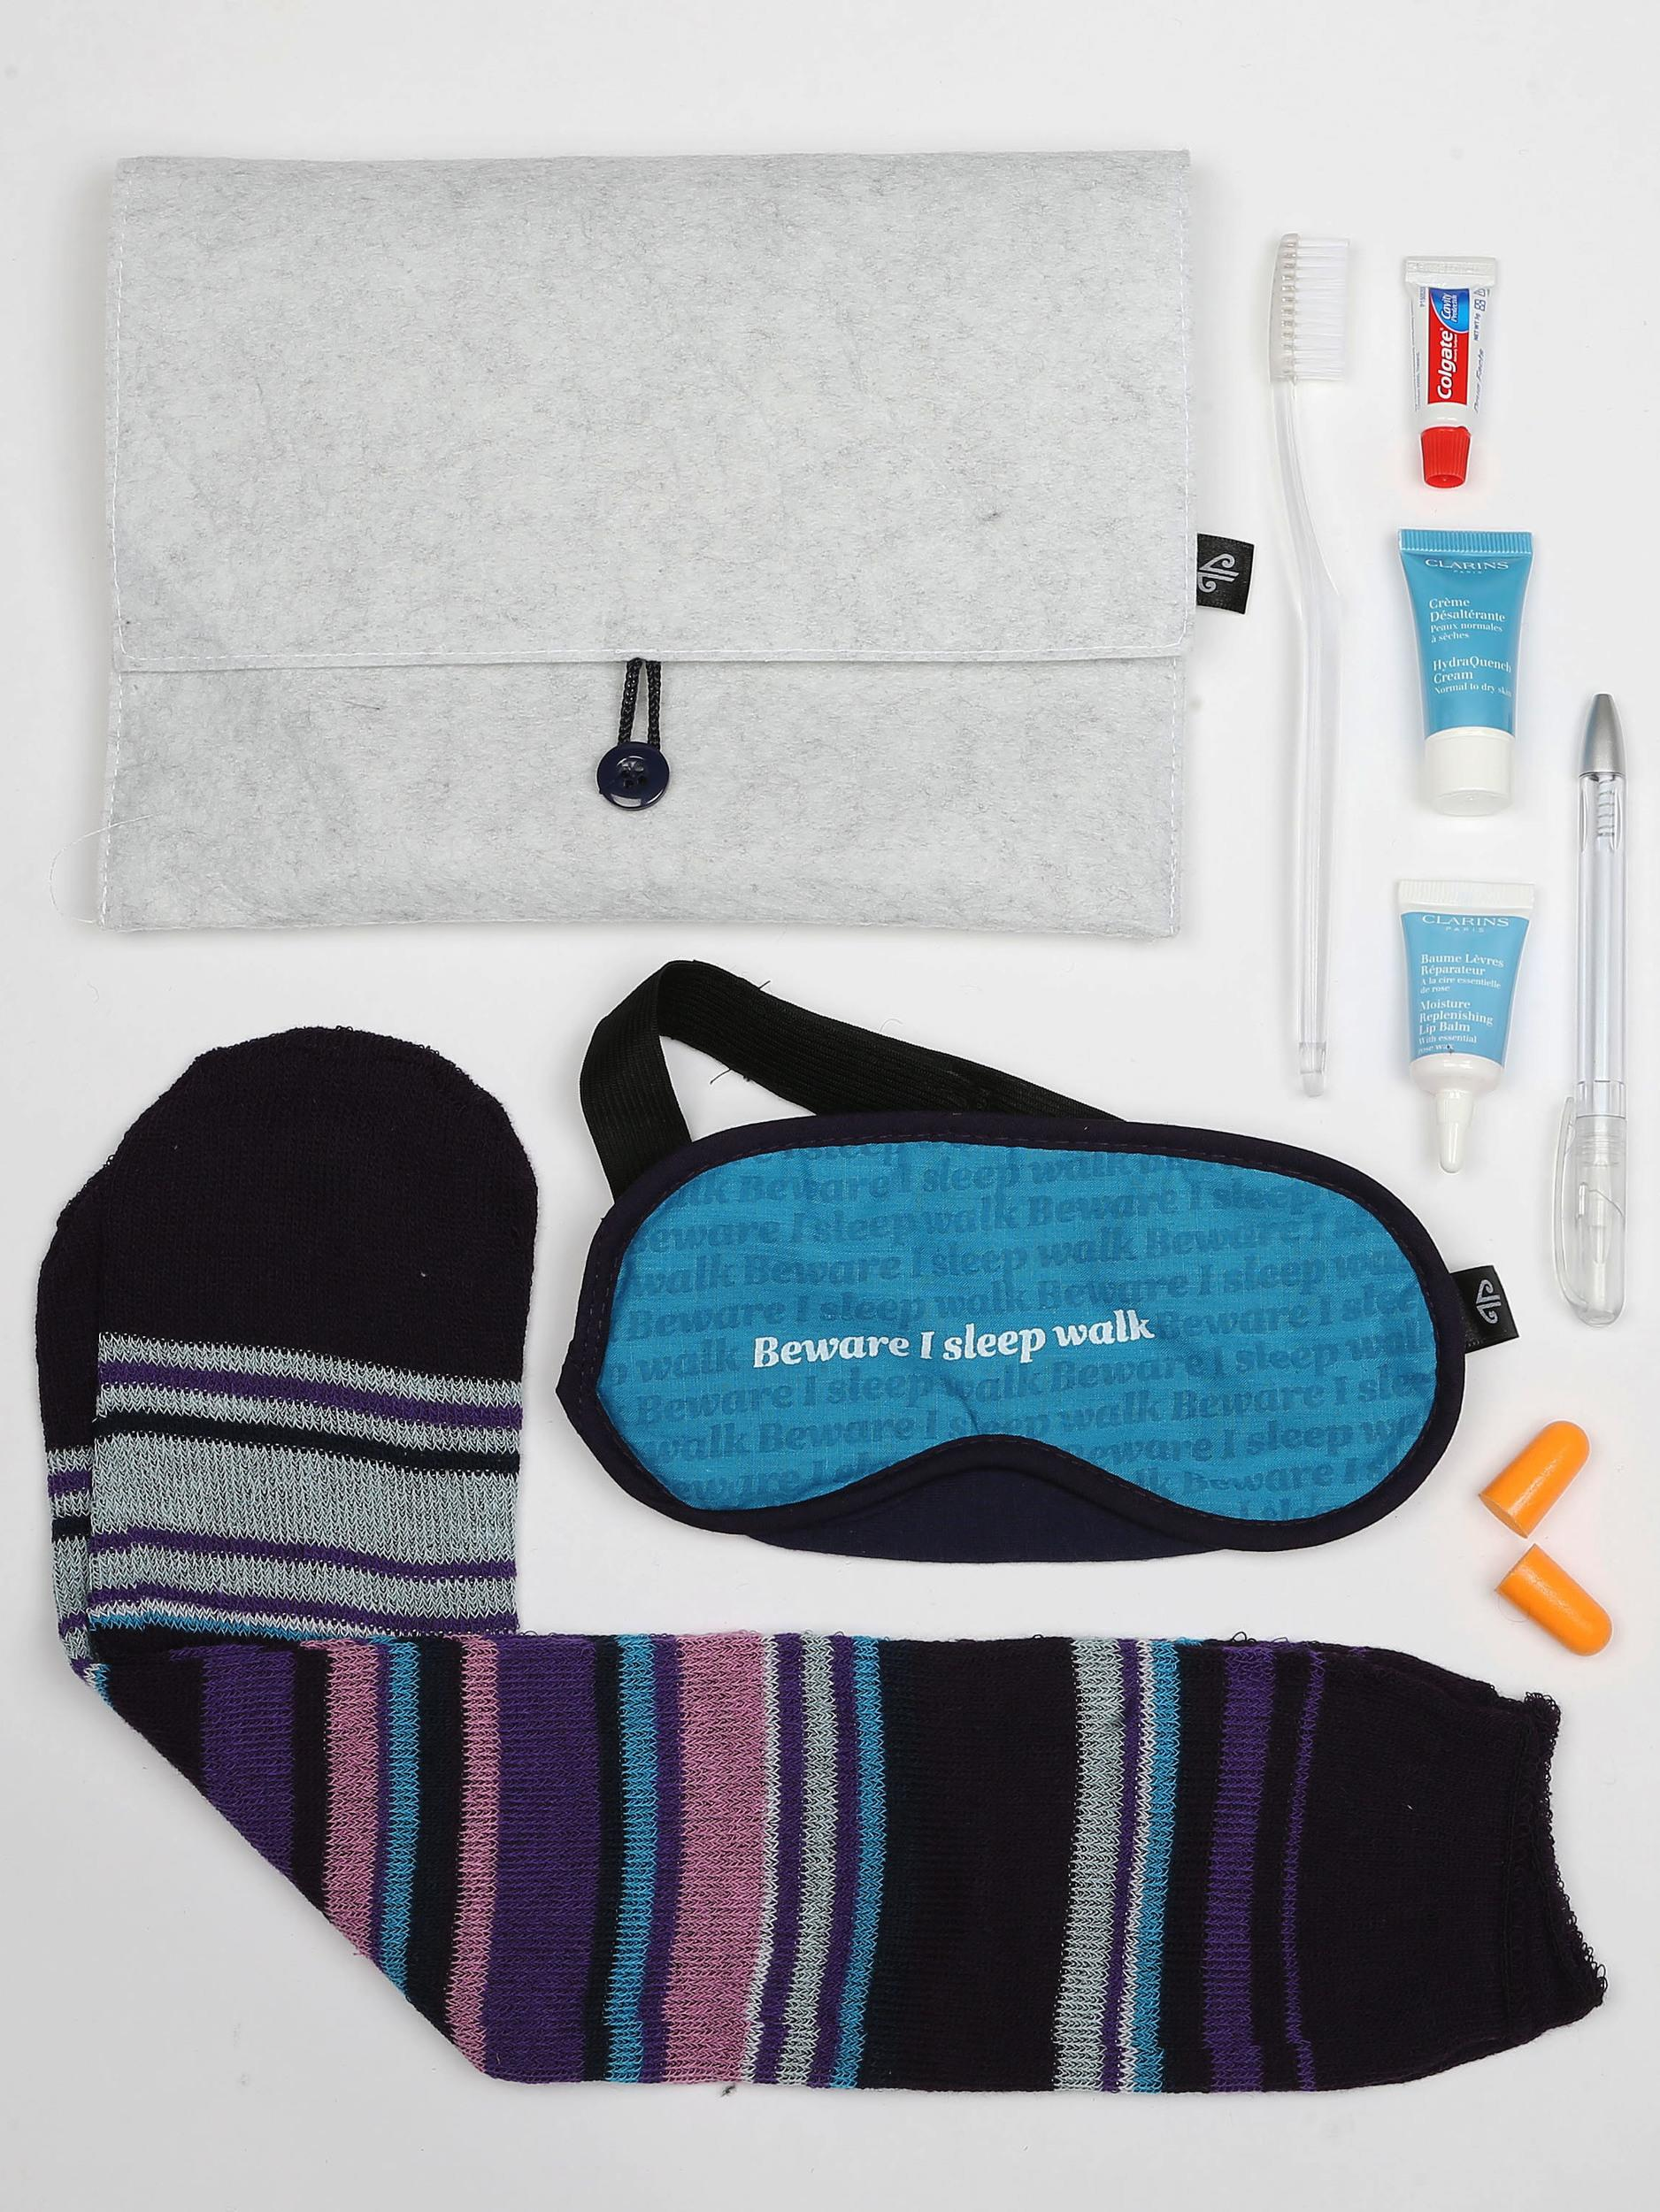 """<p><strong>What do you get?</strong> Socks in Air NZ cabin crew colours, toothbrush, toothpaste, novelty """"Beware I Sleep Walk"""" eye mask, Air NZ pen, ear plugs, Clarins HydraQuench Cream and Moisture Replenish Lip Balm.<br /> <strong>Best bit of the kit?</strong> The novelty eye mask. Air NZ has fun with flying (check out their safety videos and their willingness to rebrand for Hollywood movies). A good unisex product.</p>"""